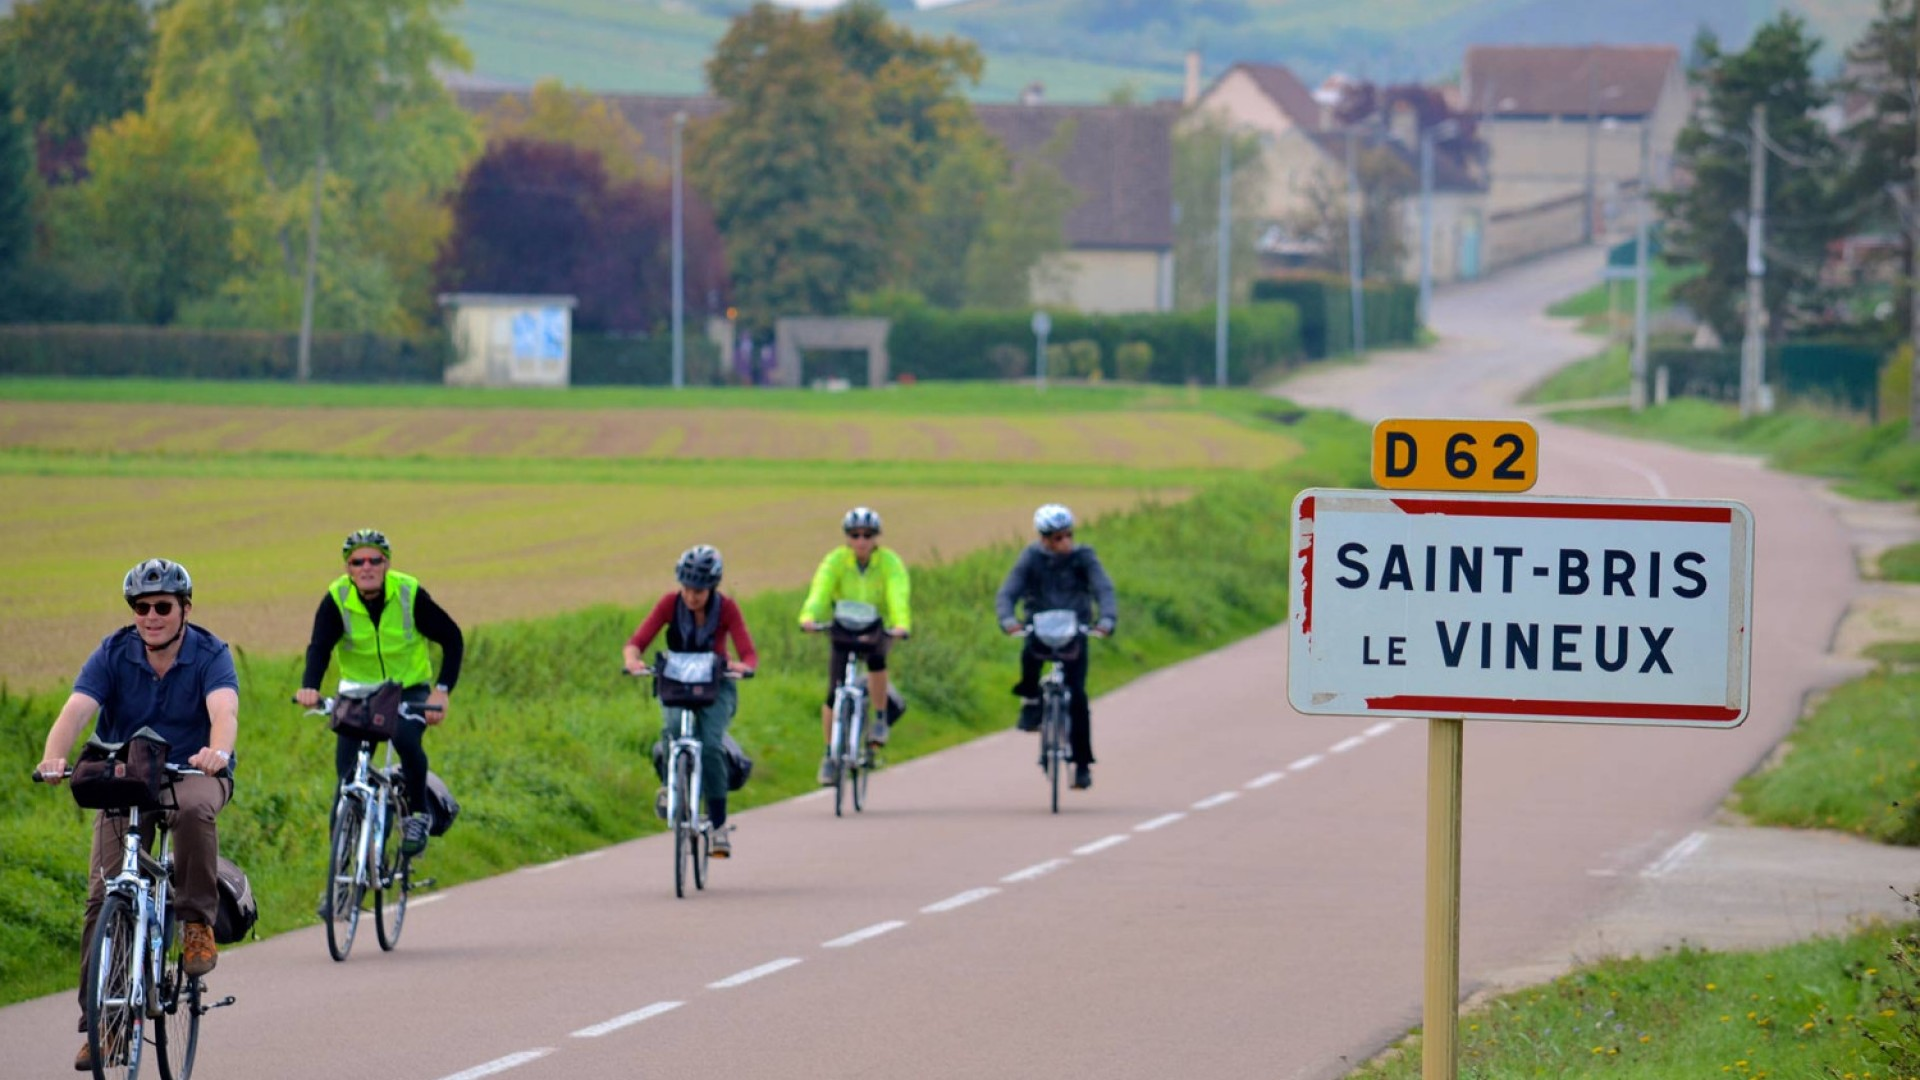 luciole biking and brage tours France